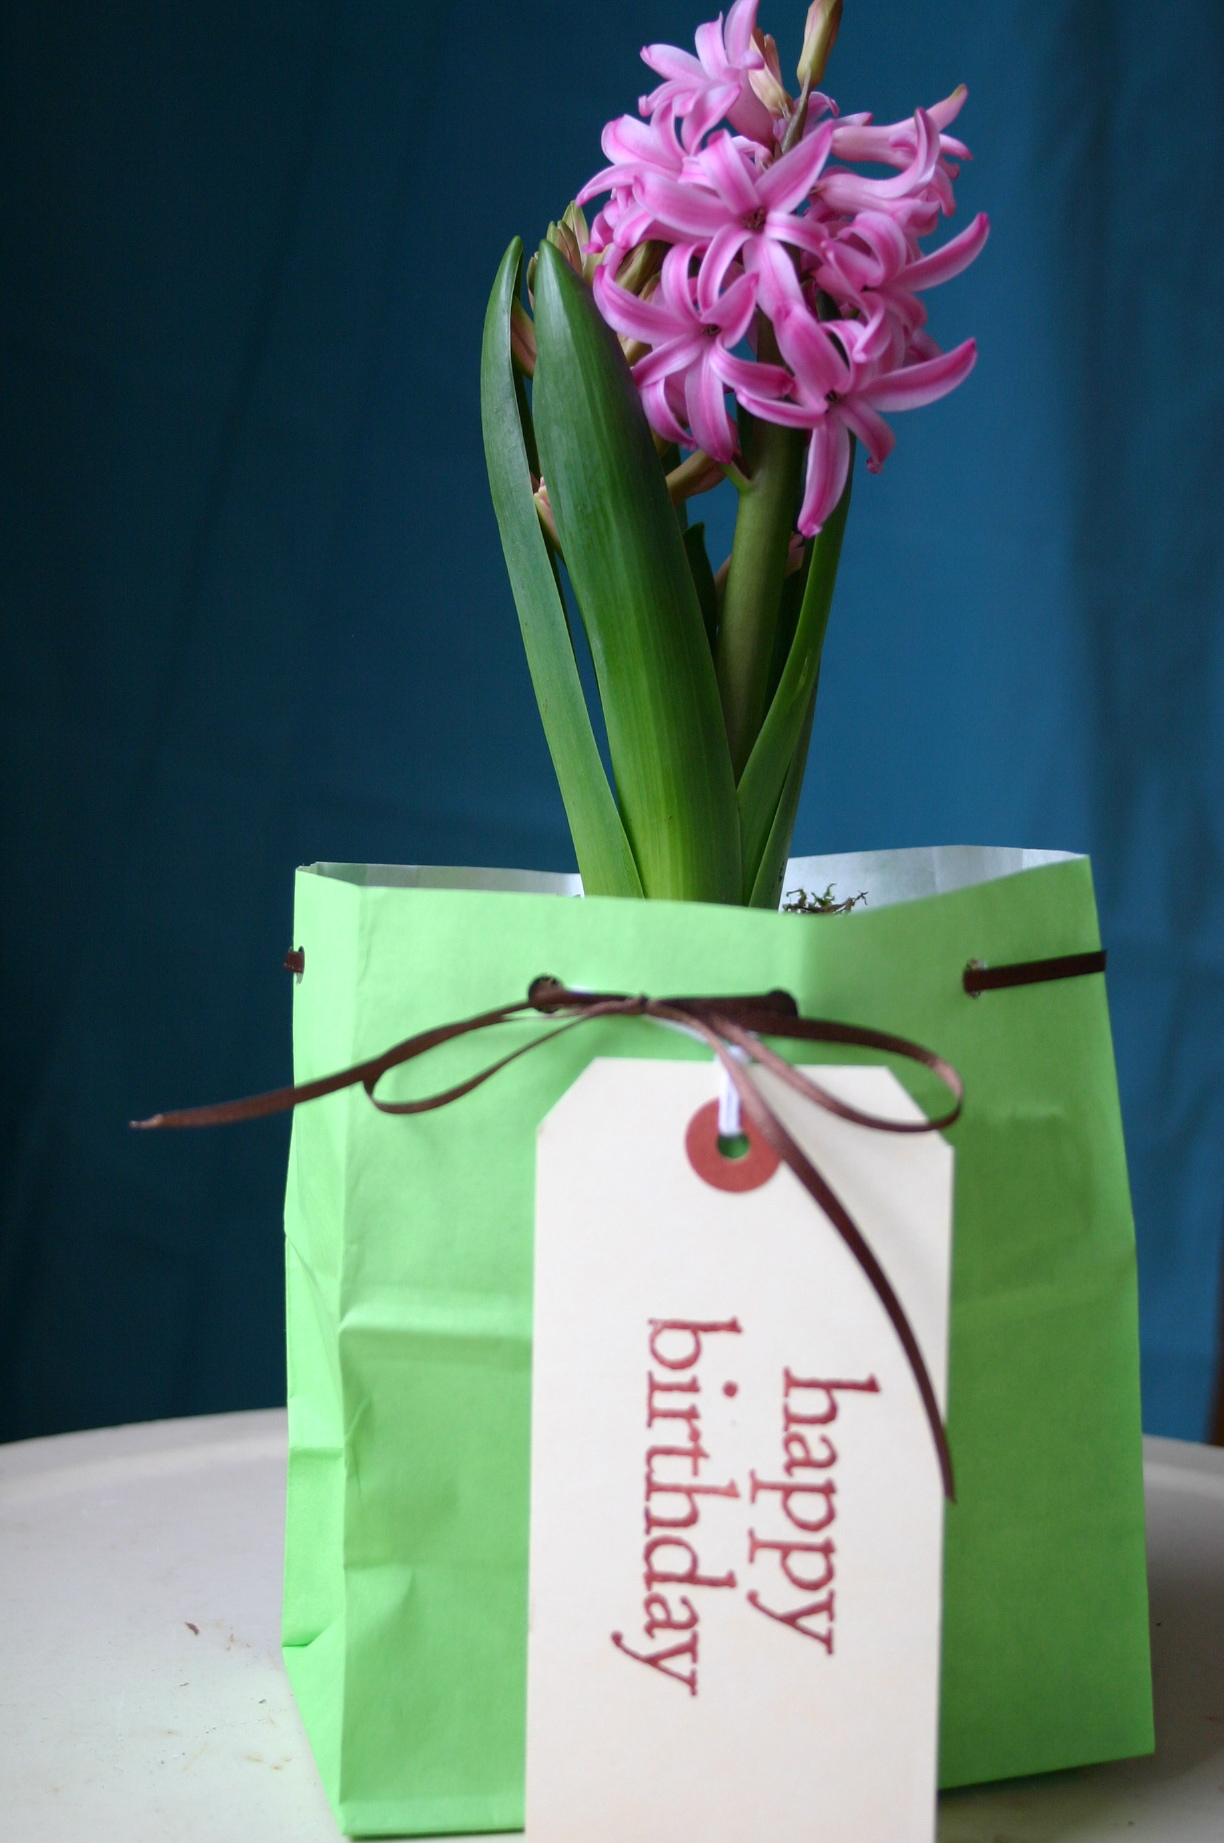 A Hyacinth plant makes a charming gift once given a few extra touches.